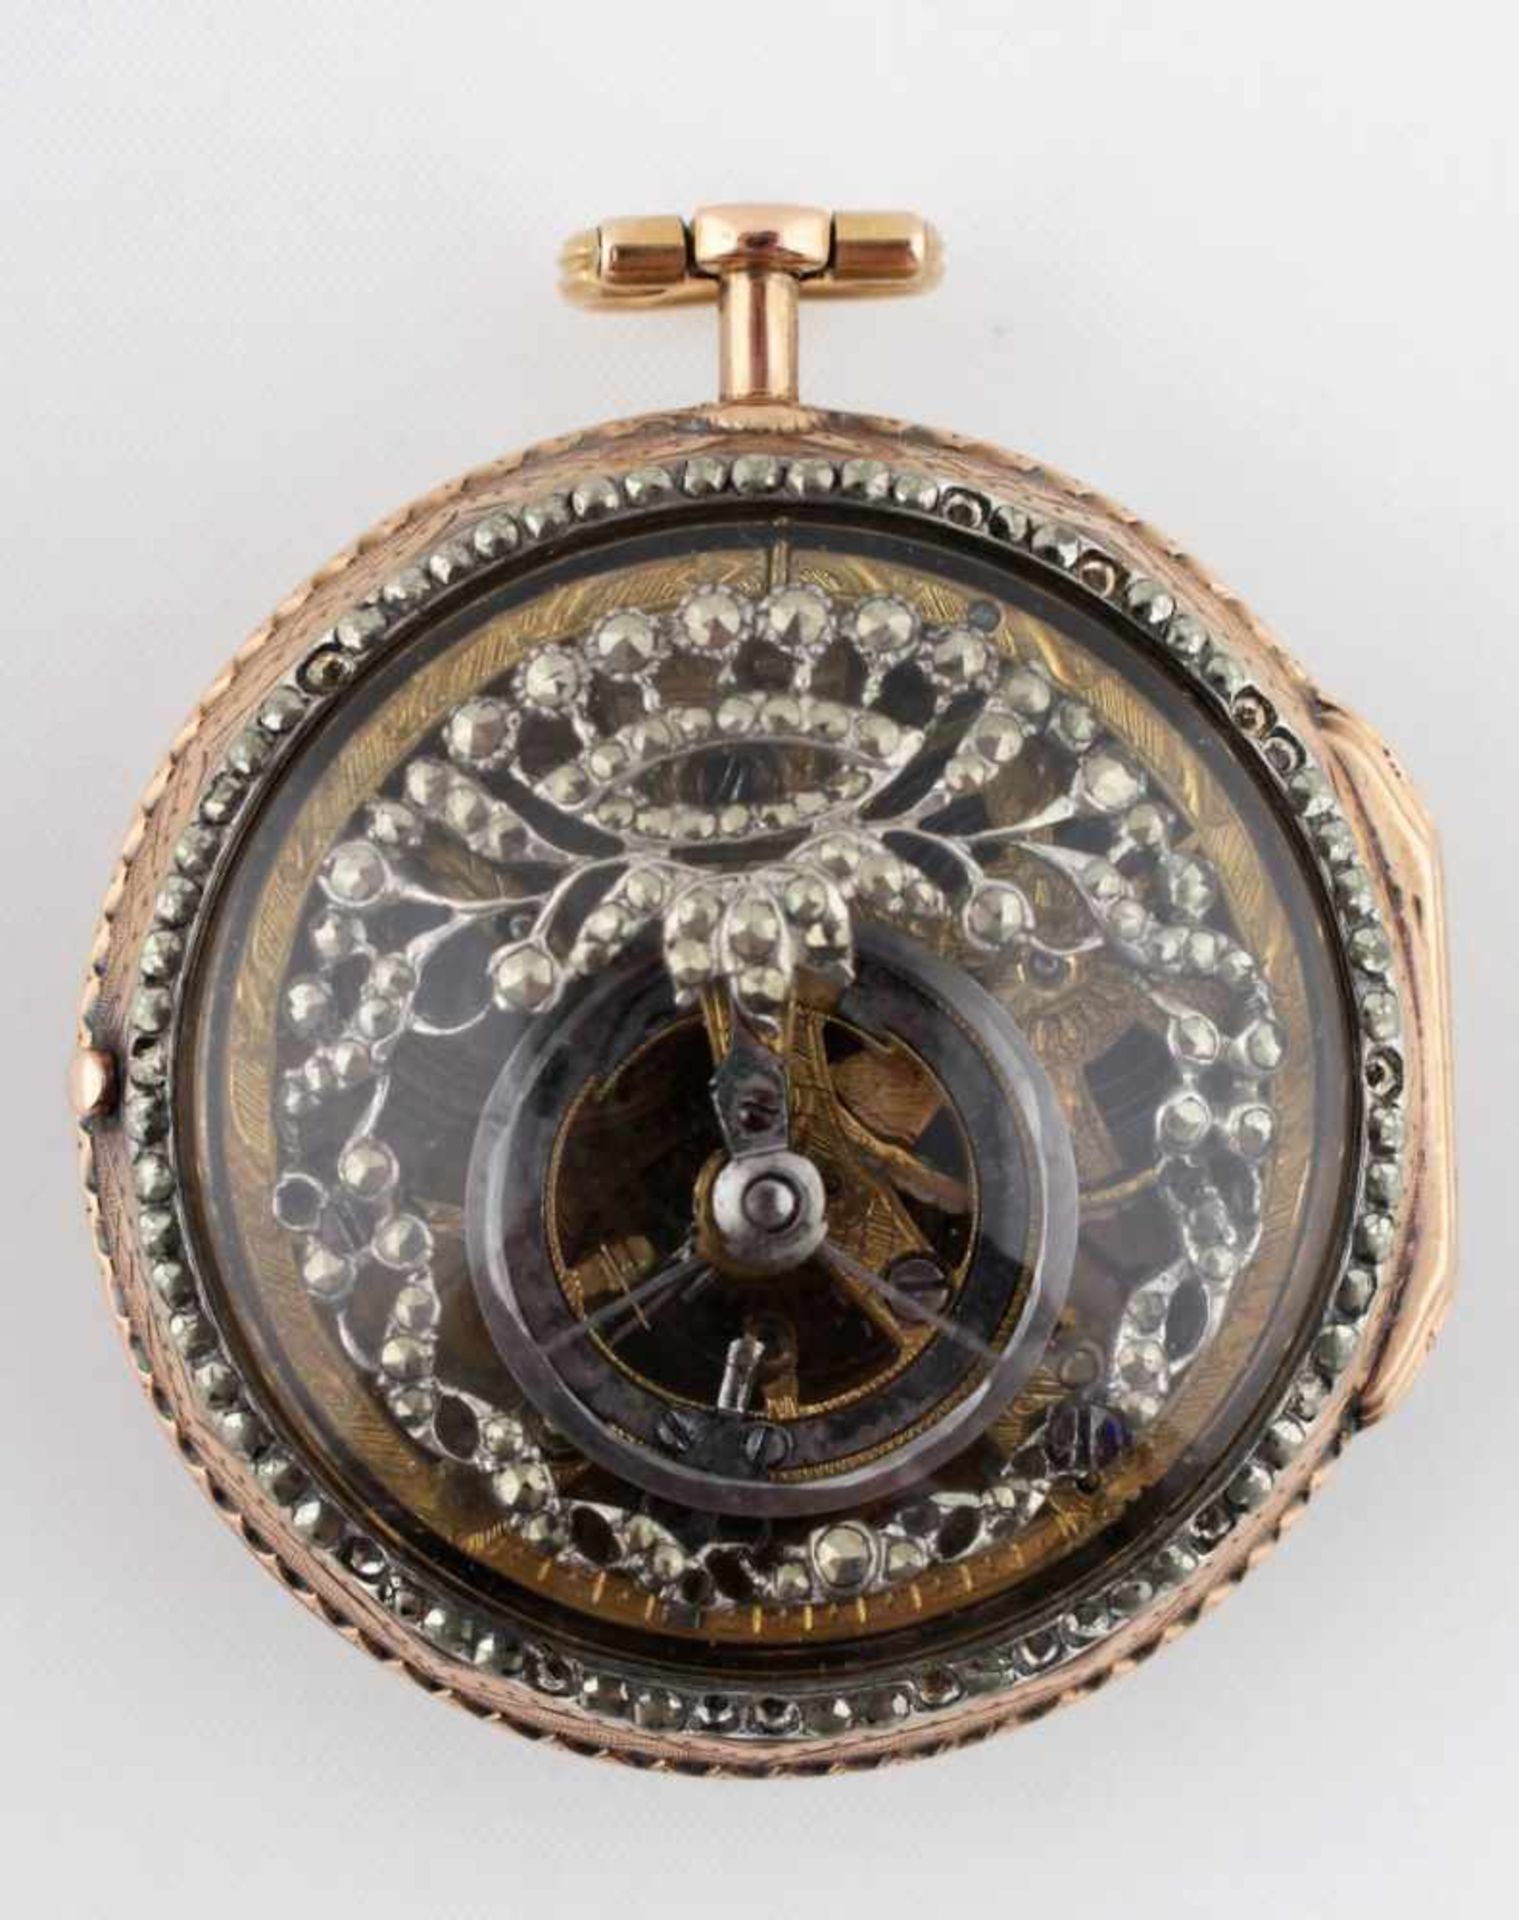 Los 15 - Gold pocket watch First half of the 19th century, pocket watch, gold case Au 720/1000 with silver,